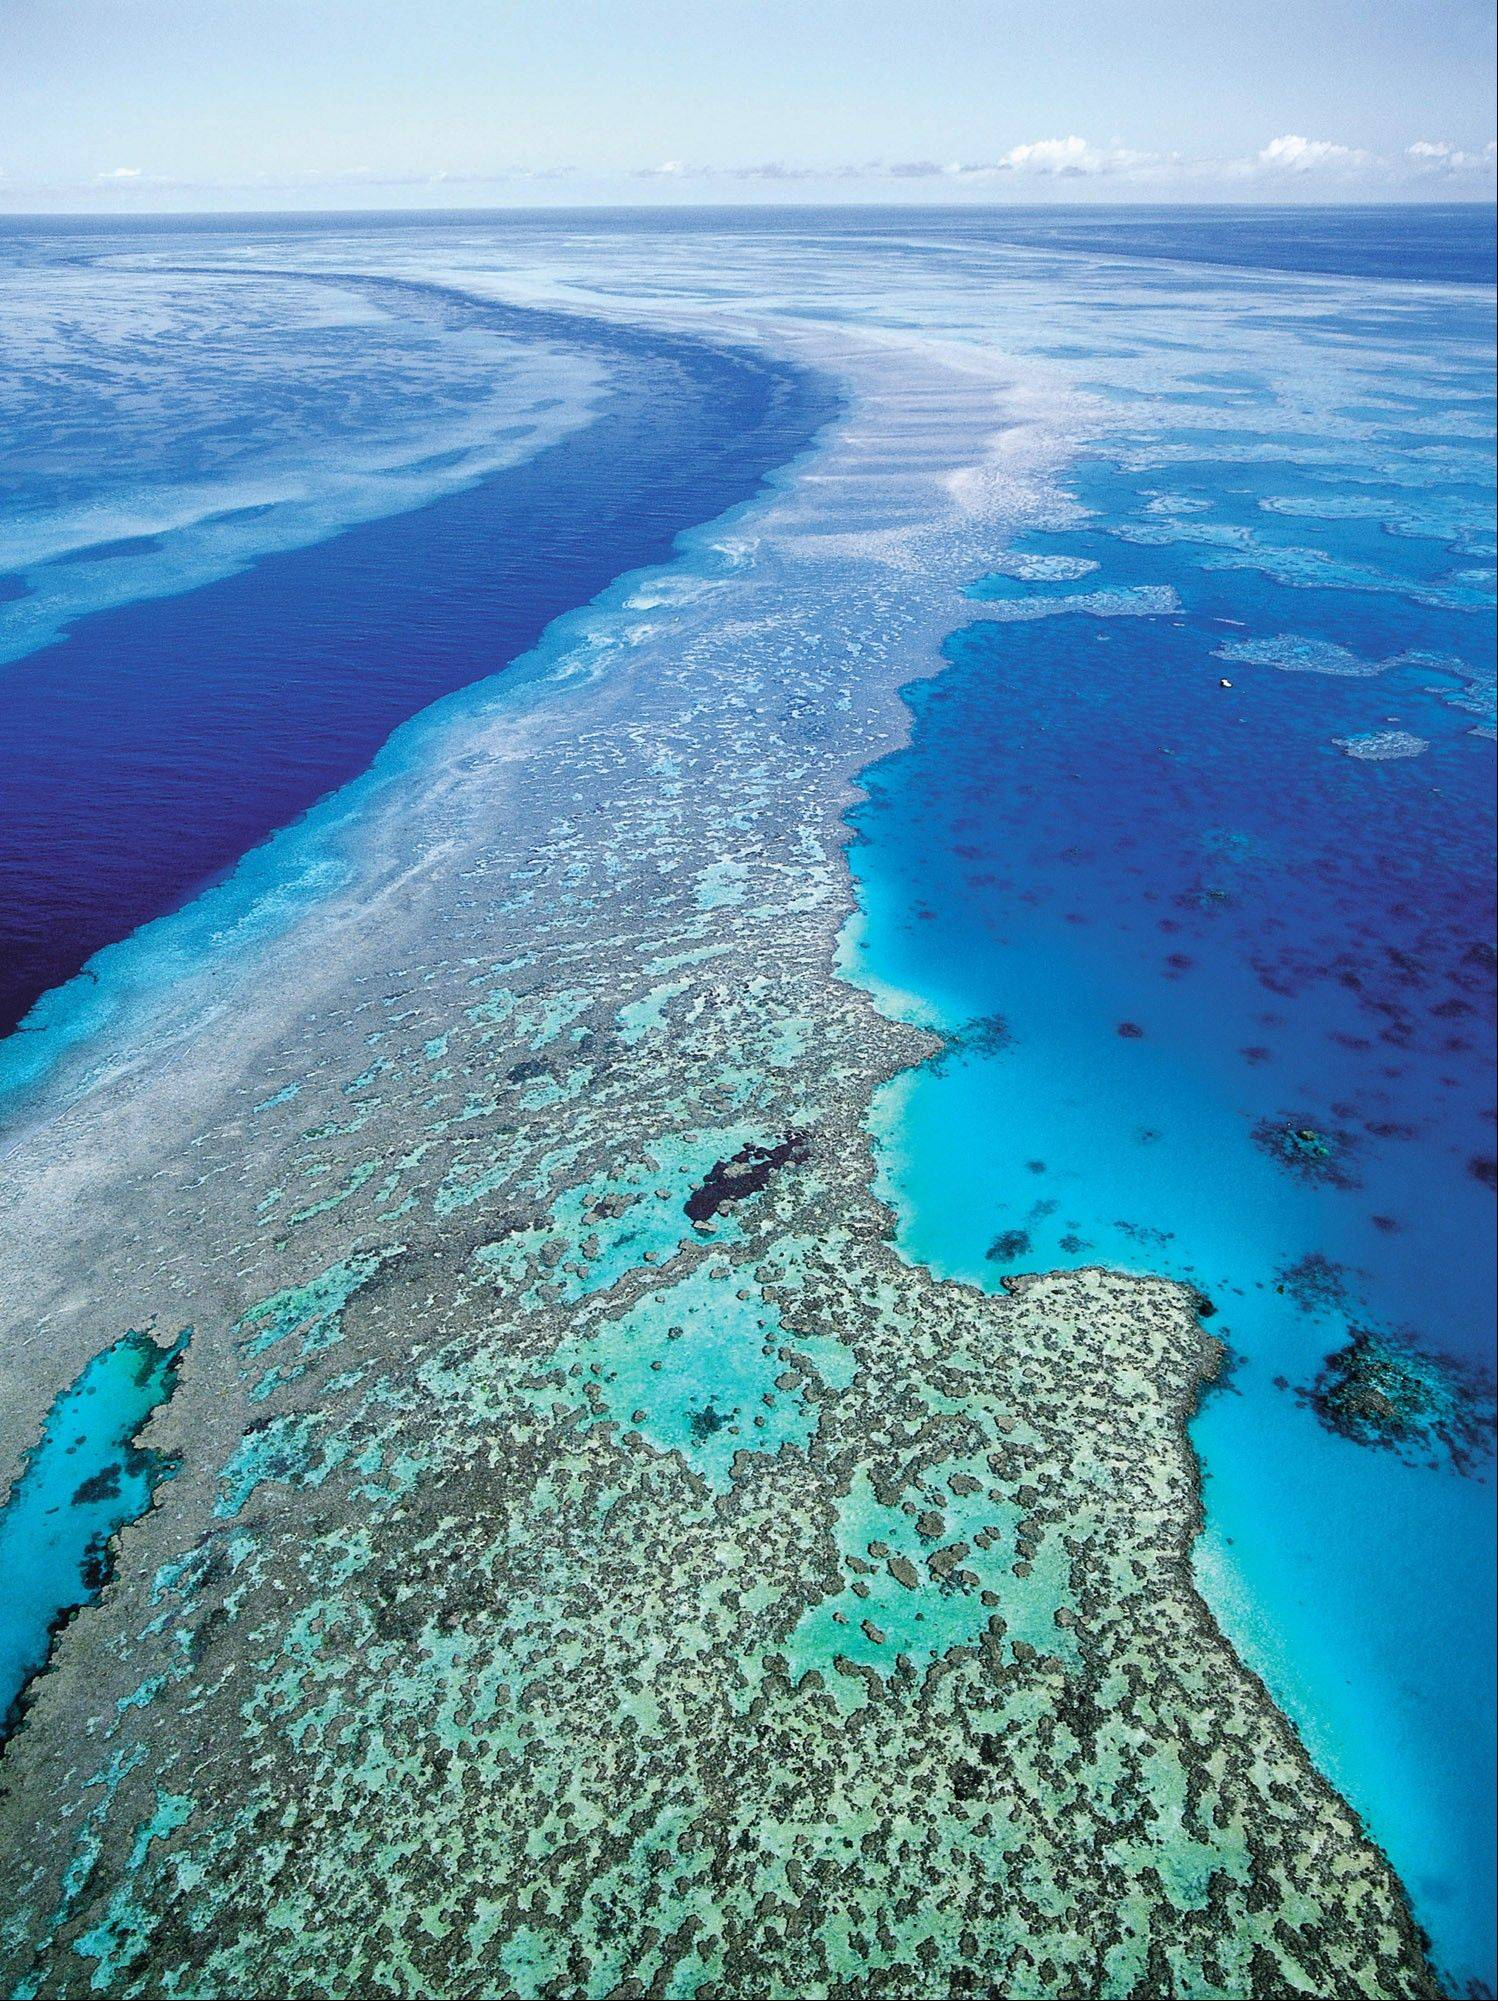 This is the Great Barrier Reef off Australia's Queensland state. Australia and New Zealand get the unique risk of losing their coral reef ecosystems if global warming continues.